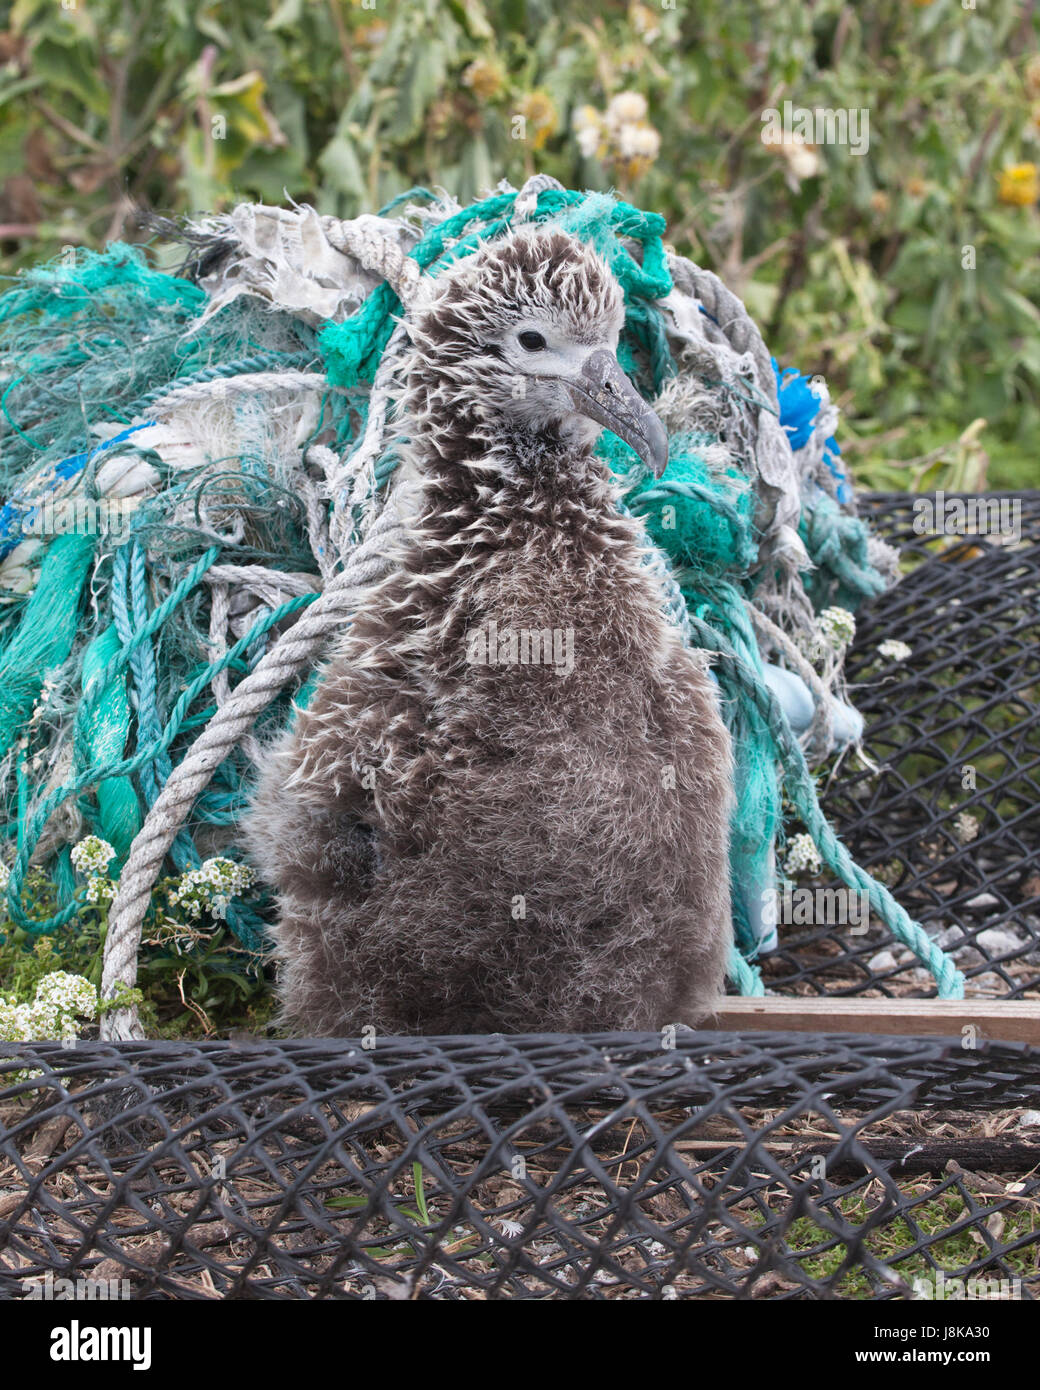 Laysan Albatross chick and plastic marine debris including ropes and ghost nets washed ashore on a North Pacific - Stock Image